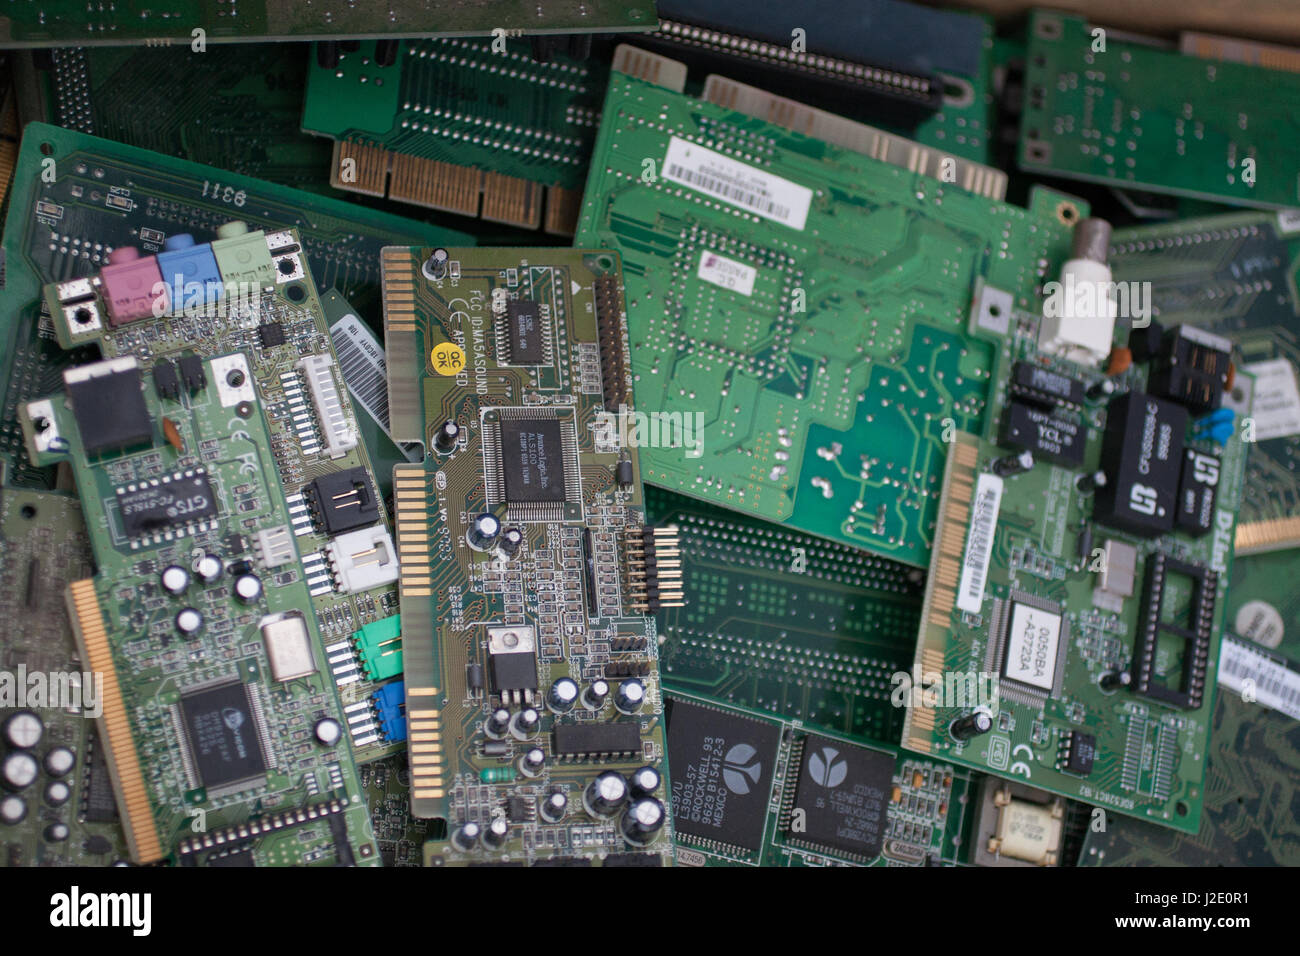 PCI Cards - Stock Image